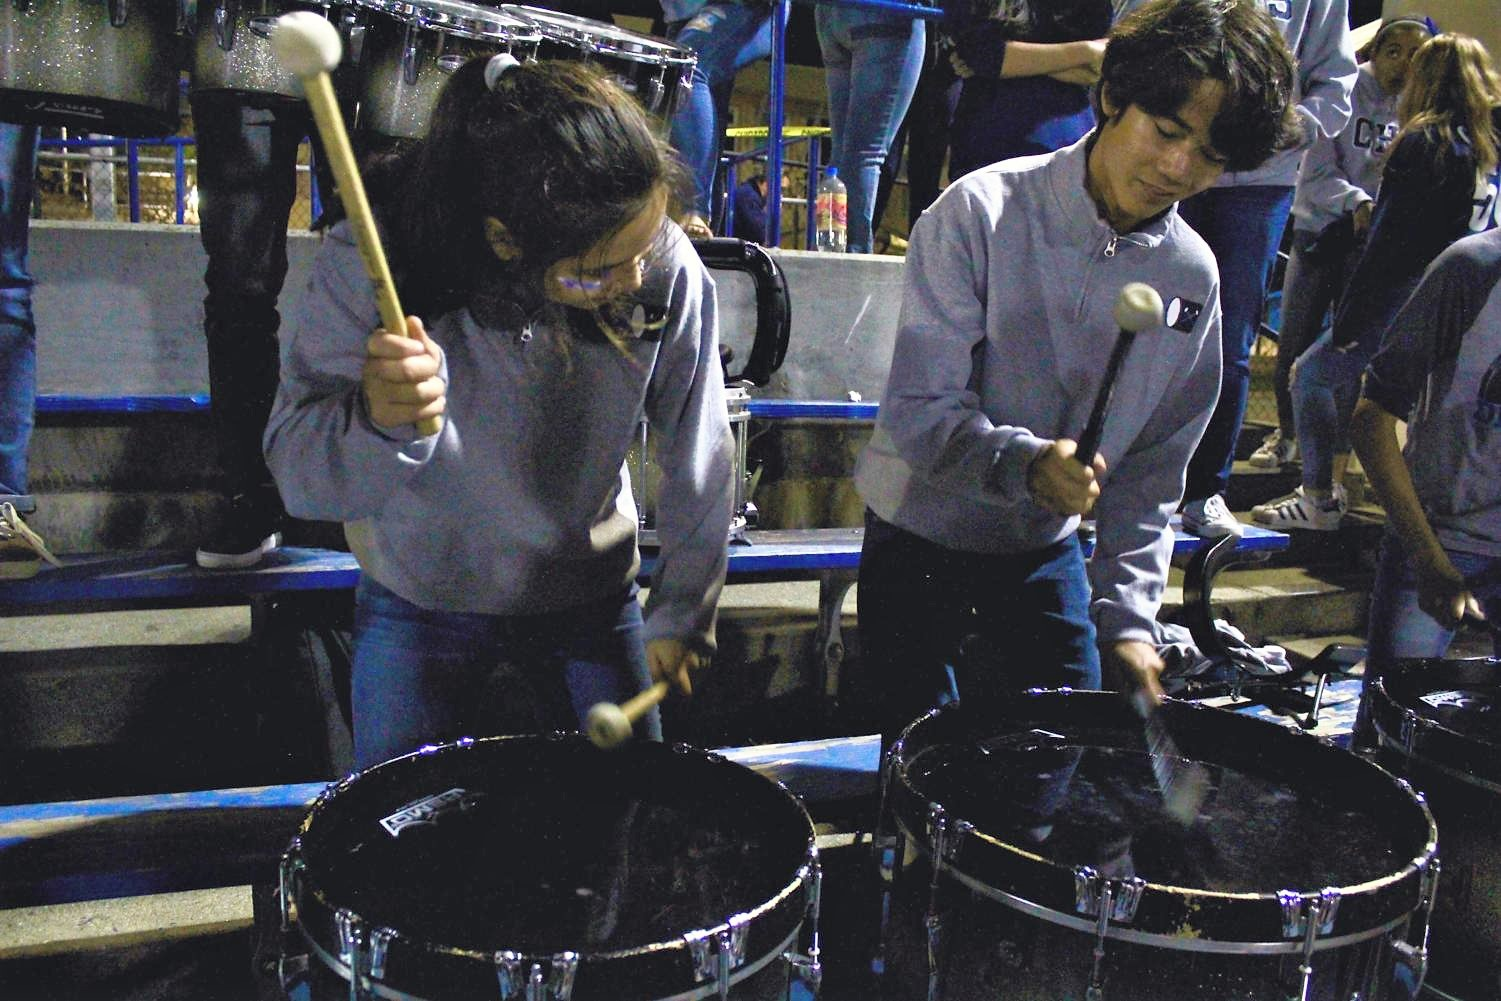 Juniors Isabel Coughlin and Niko Haller play the bass drums at a football game.